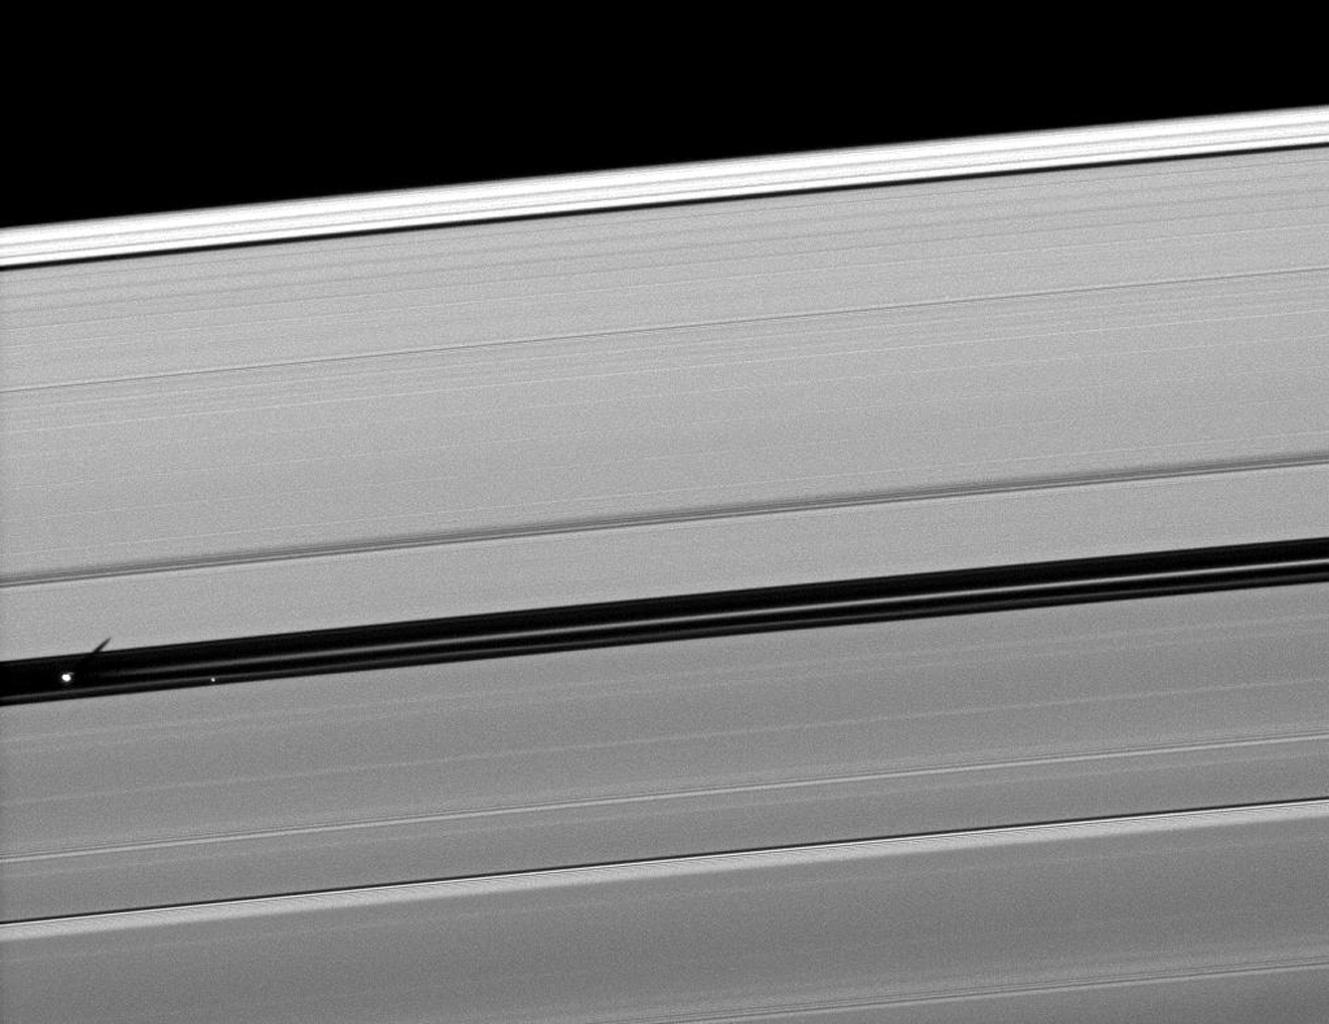 Orbiting in the Encke Gap of Saturn's A ring, the moon Pan casts a shadow on the ring in this image taken about six months after the planet's August 2009 equinox by NASA's Cassini spacecraft.